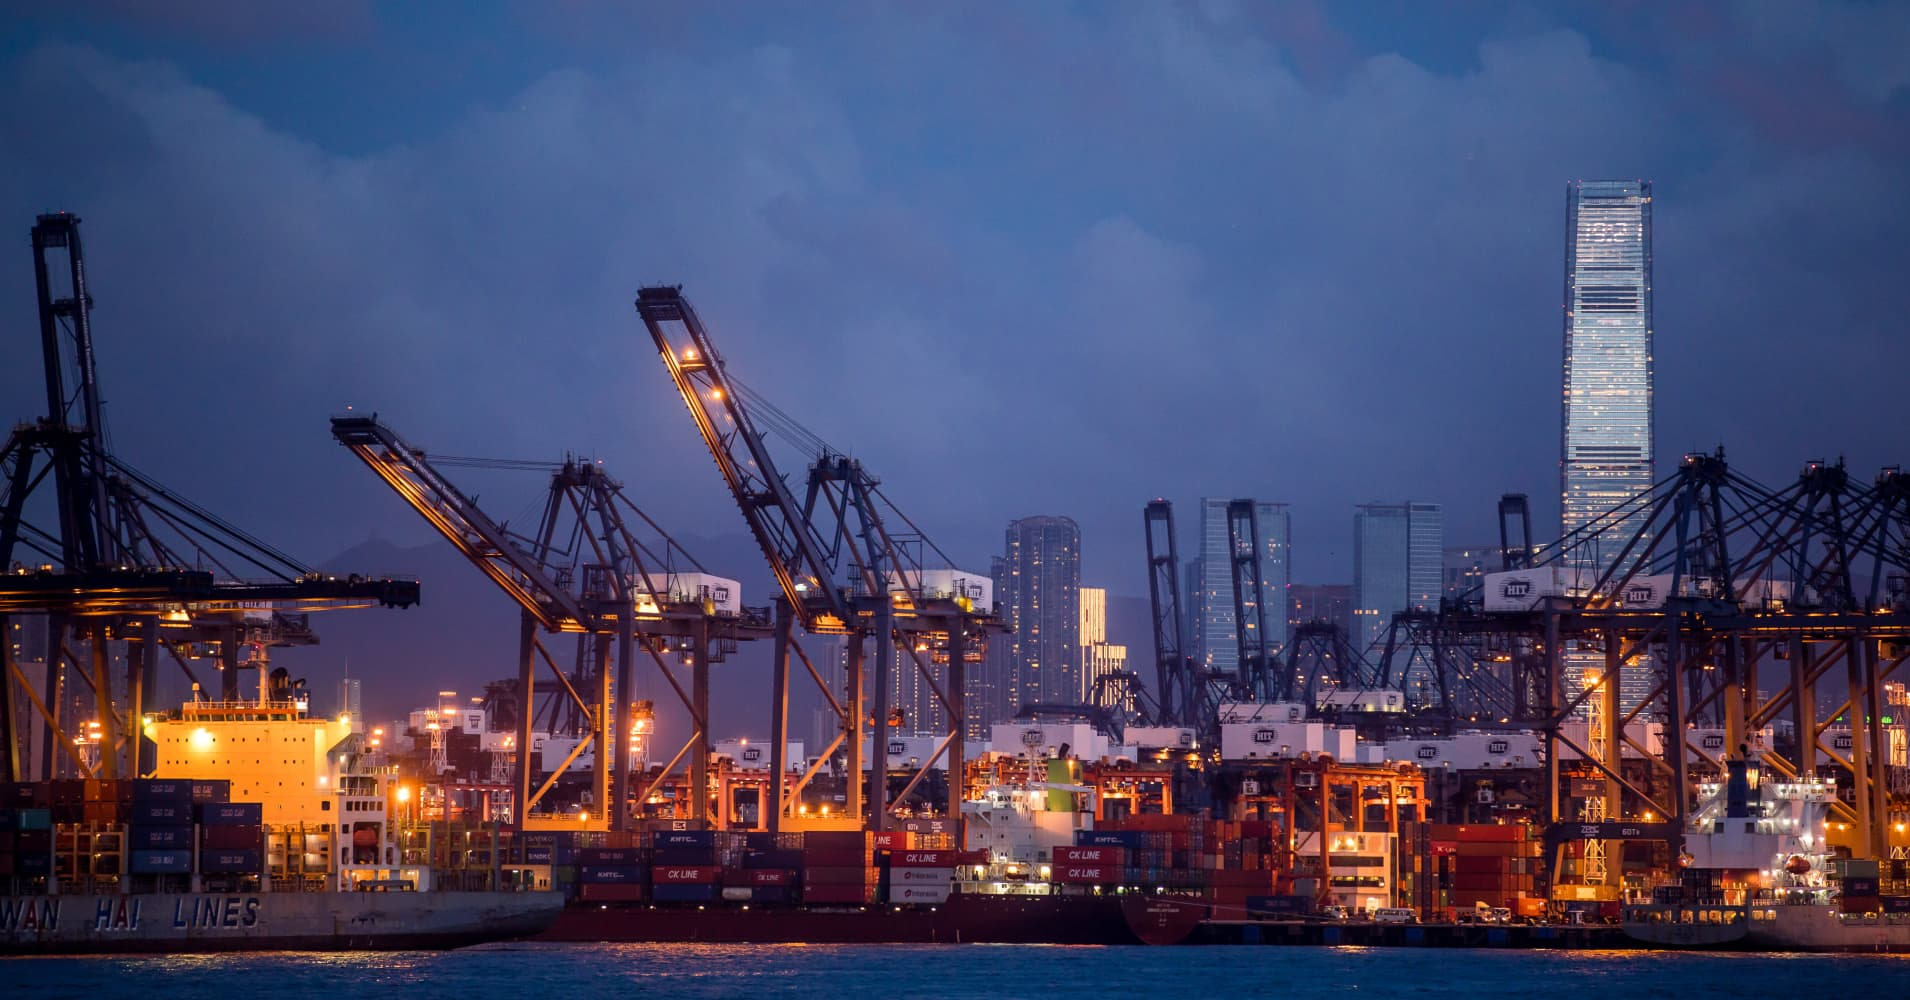 Hong Kong's port has fallen behind rivals. Industry experts say it needs to be more competitive